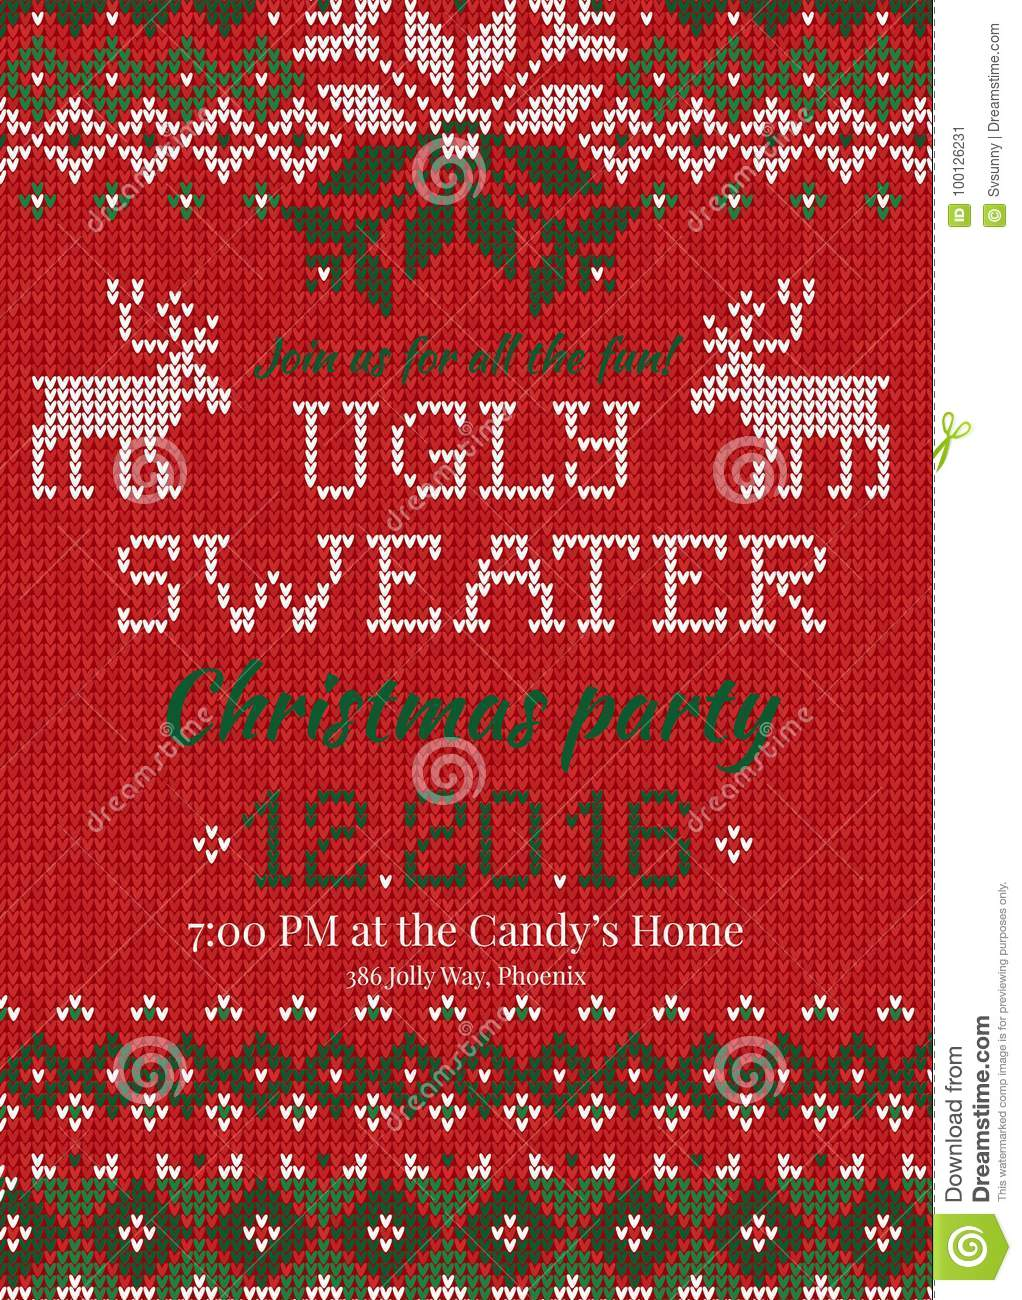 736e52c618a29 Ugly sweater Christmas party invite. Vector illustration Handmade knitted  background pattern with deers and snowflakes